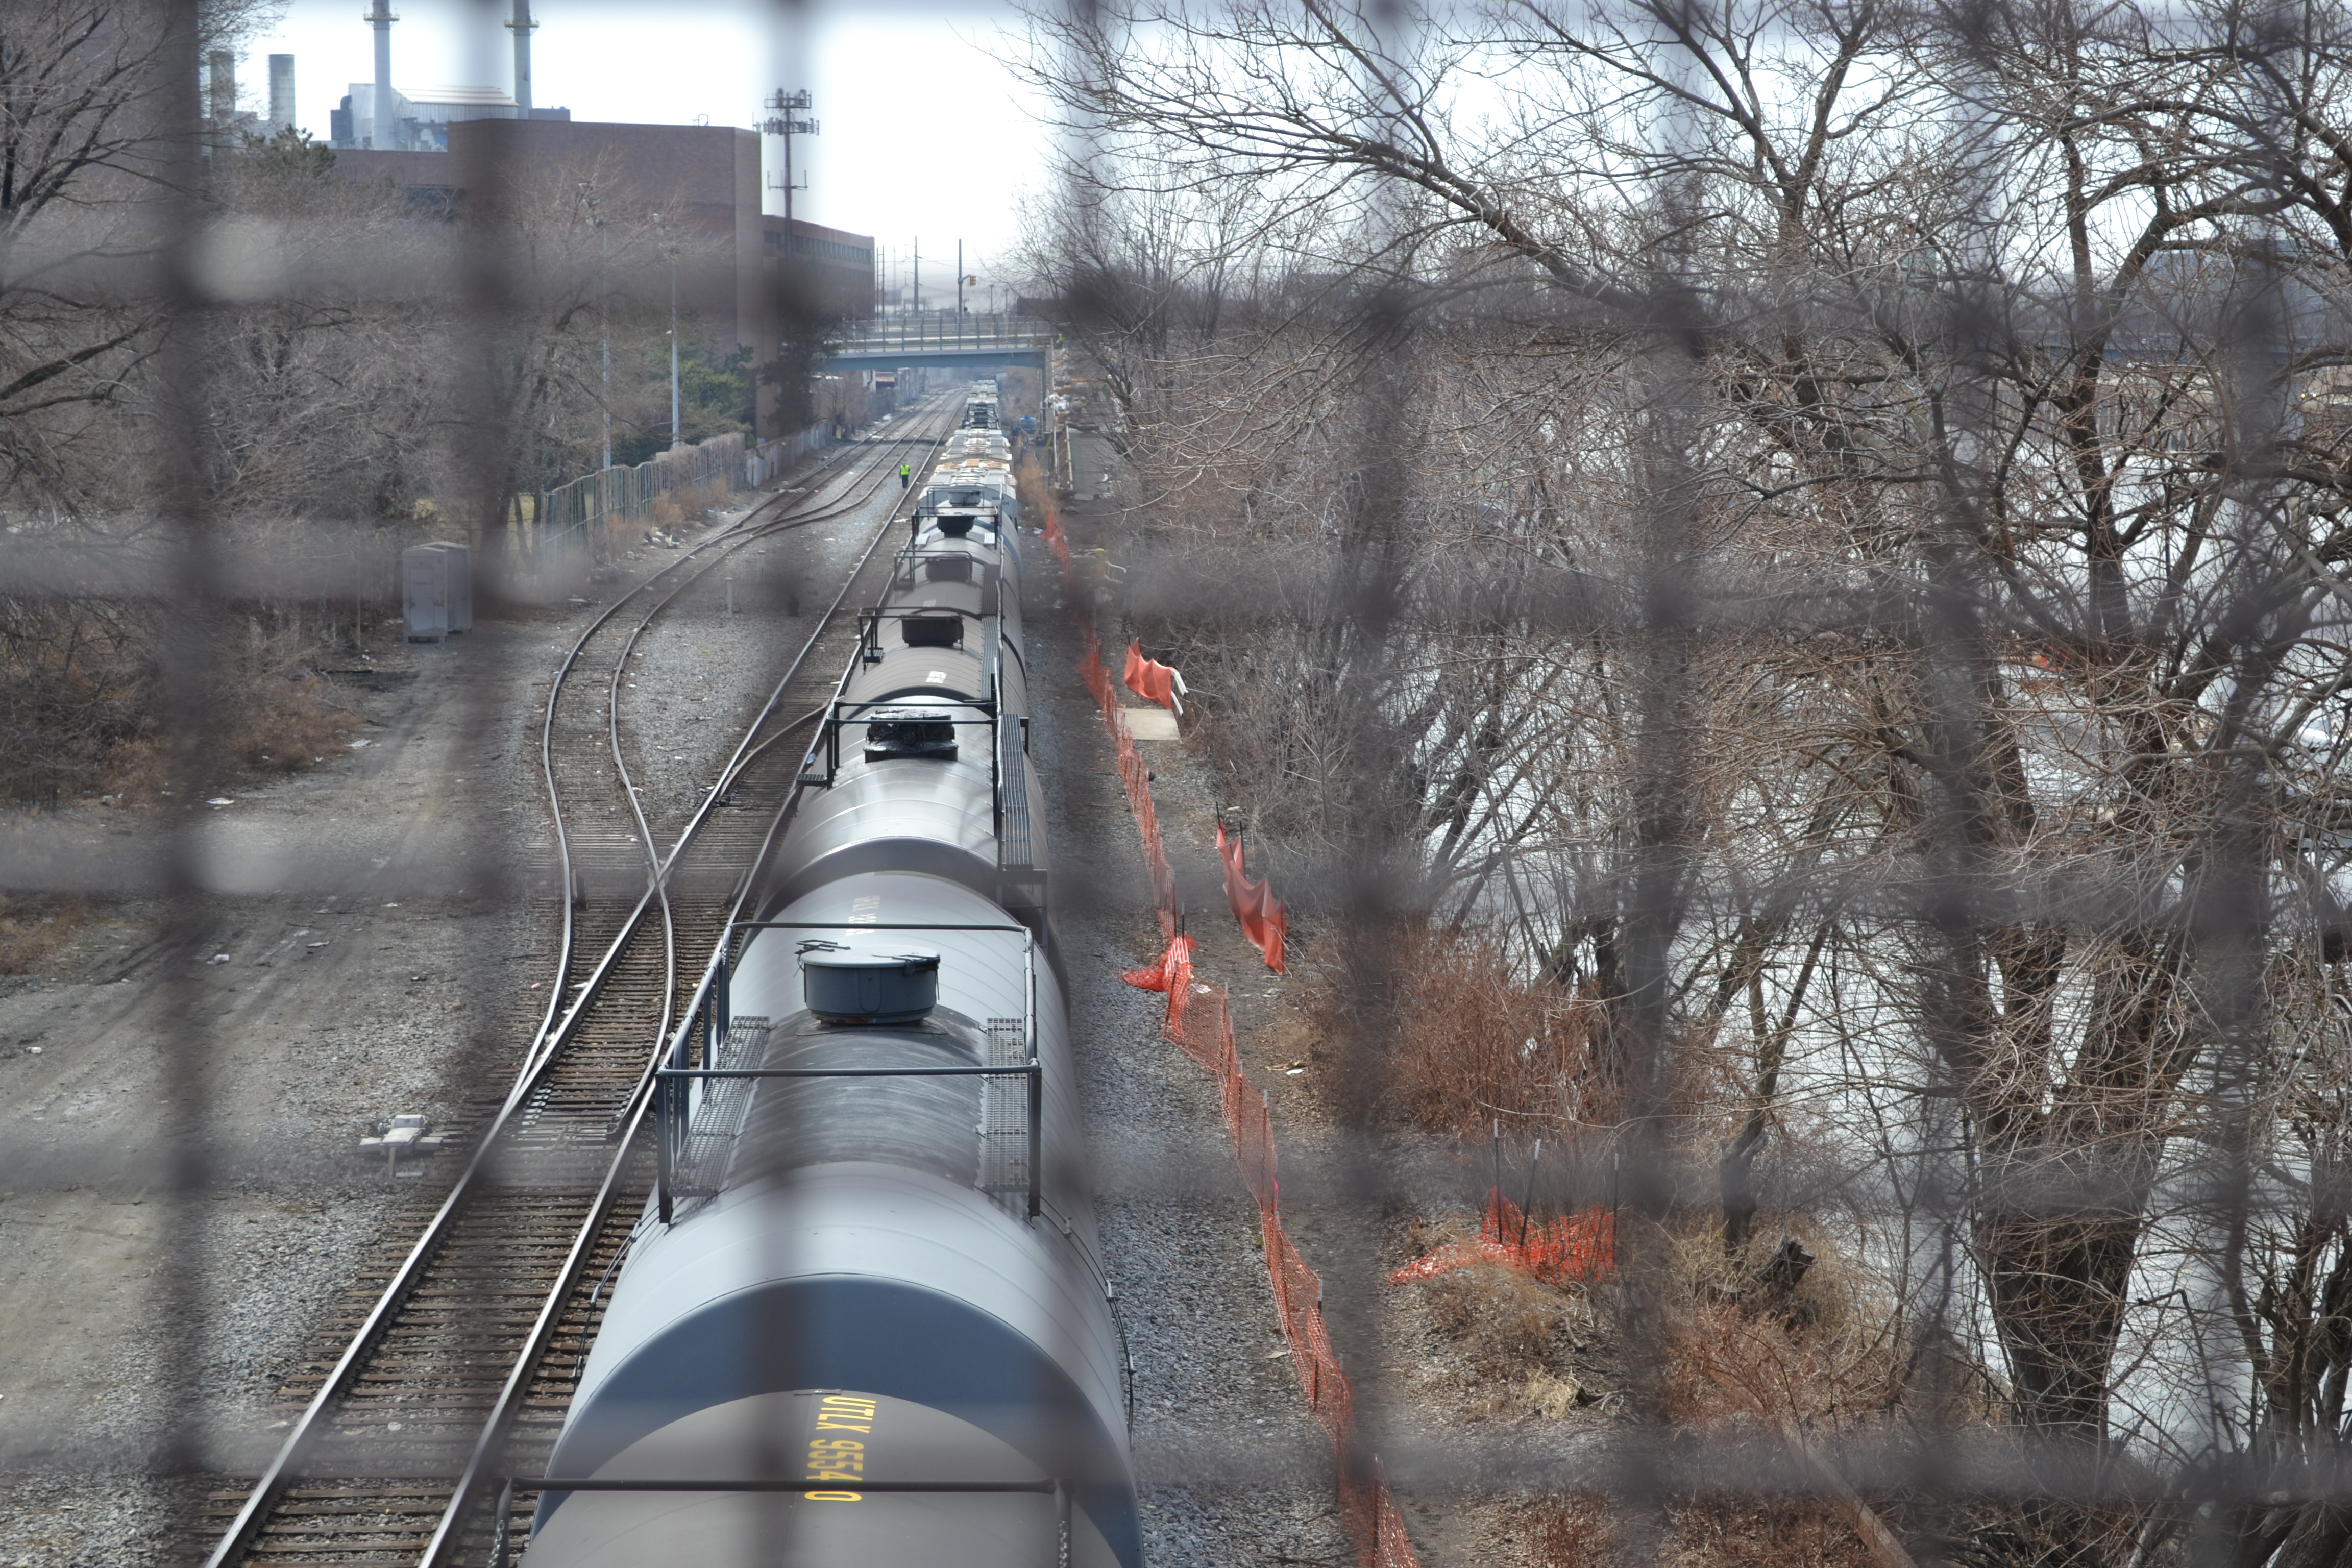 Freight cars stretch back as far as the eye can see on tracks along the Schuylkill River